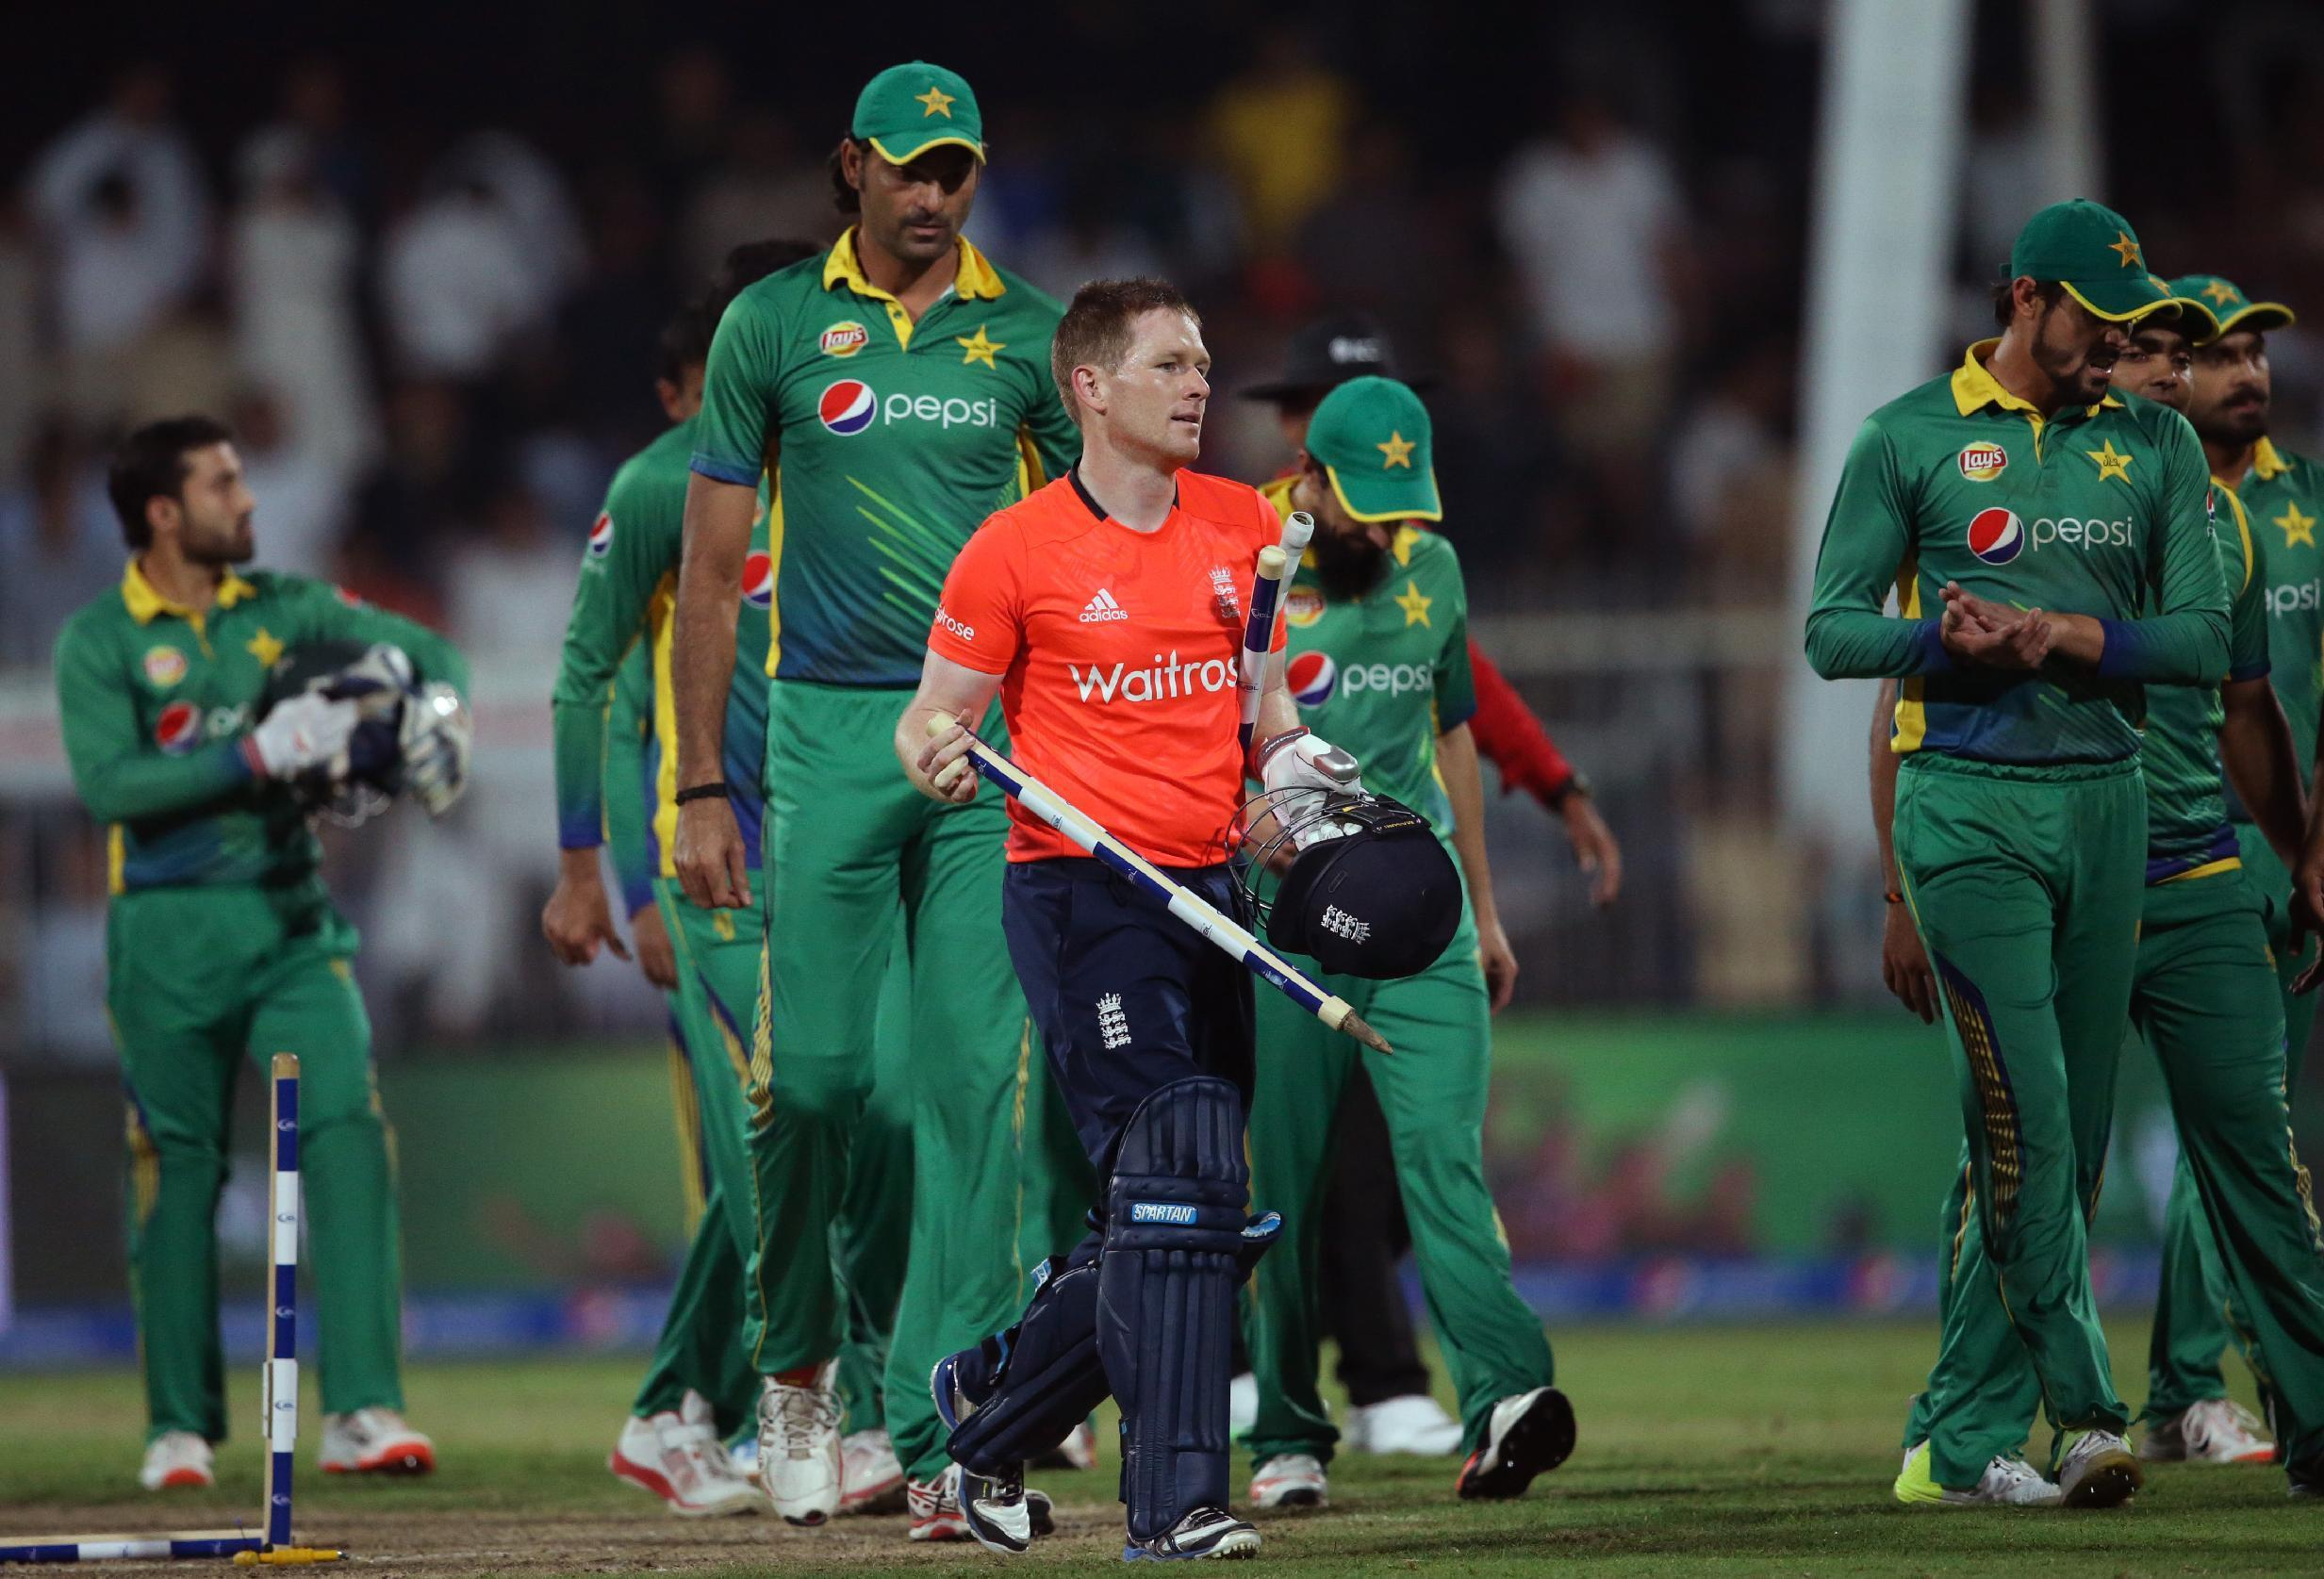 England sweeps T20 series vs Pakistan by winning 3rd match